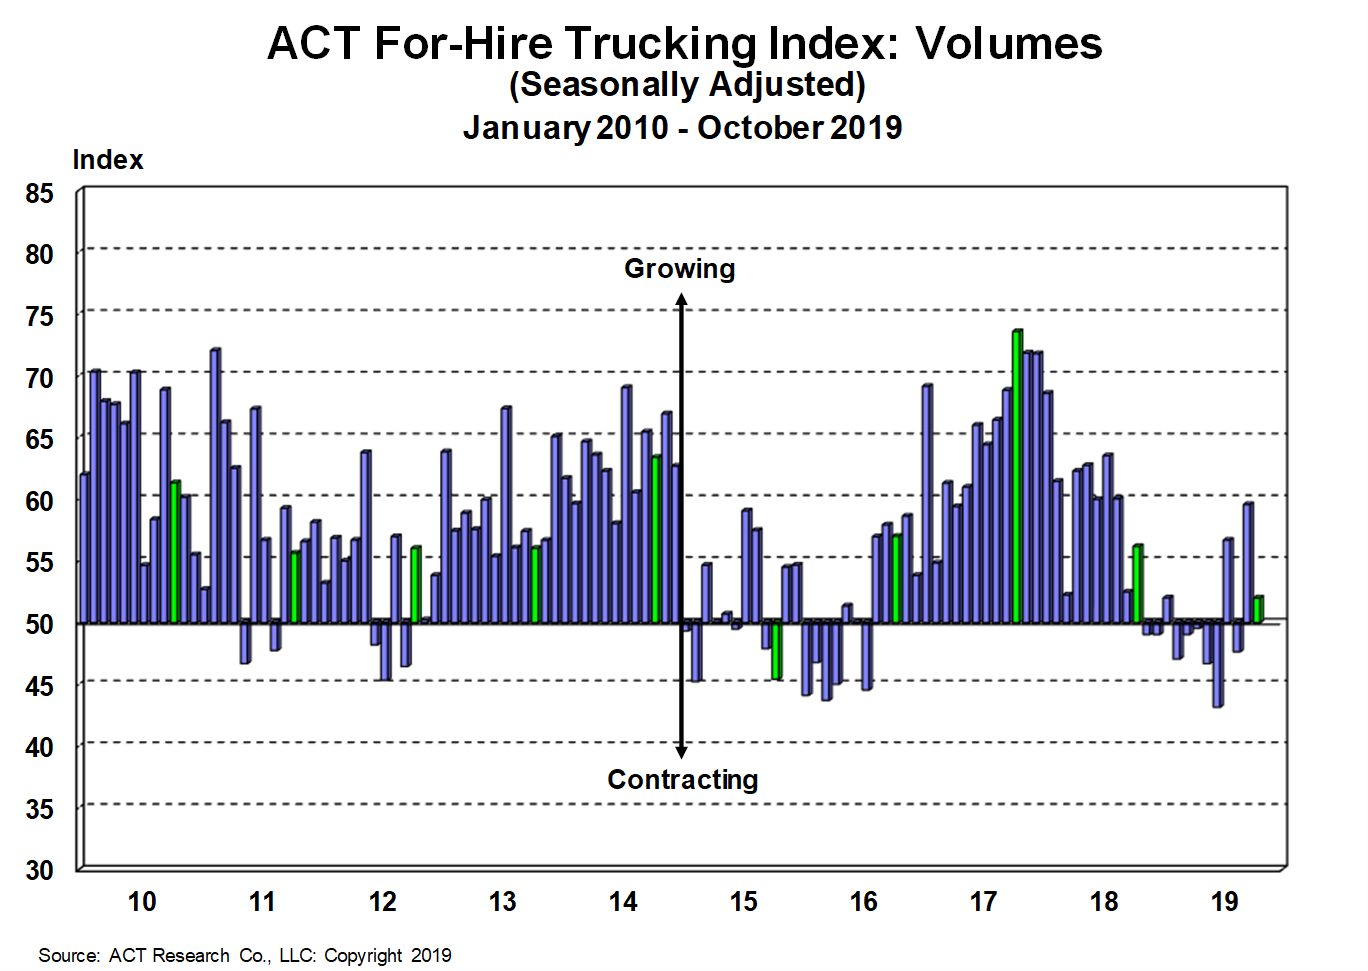 For-Hire Volume Index 11-27-19